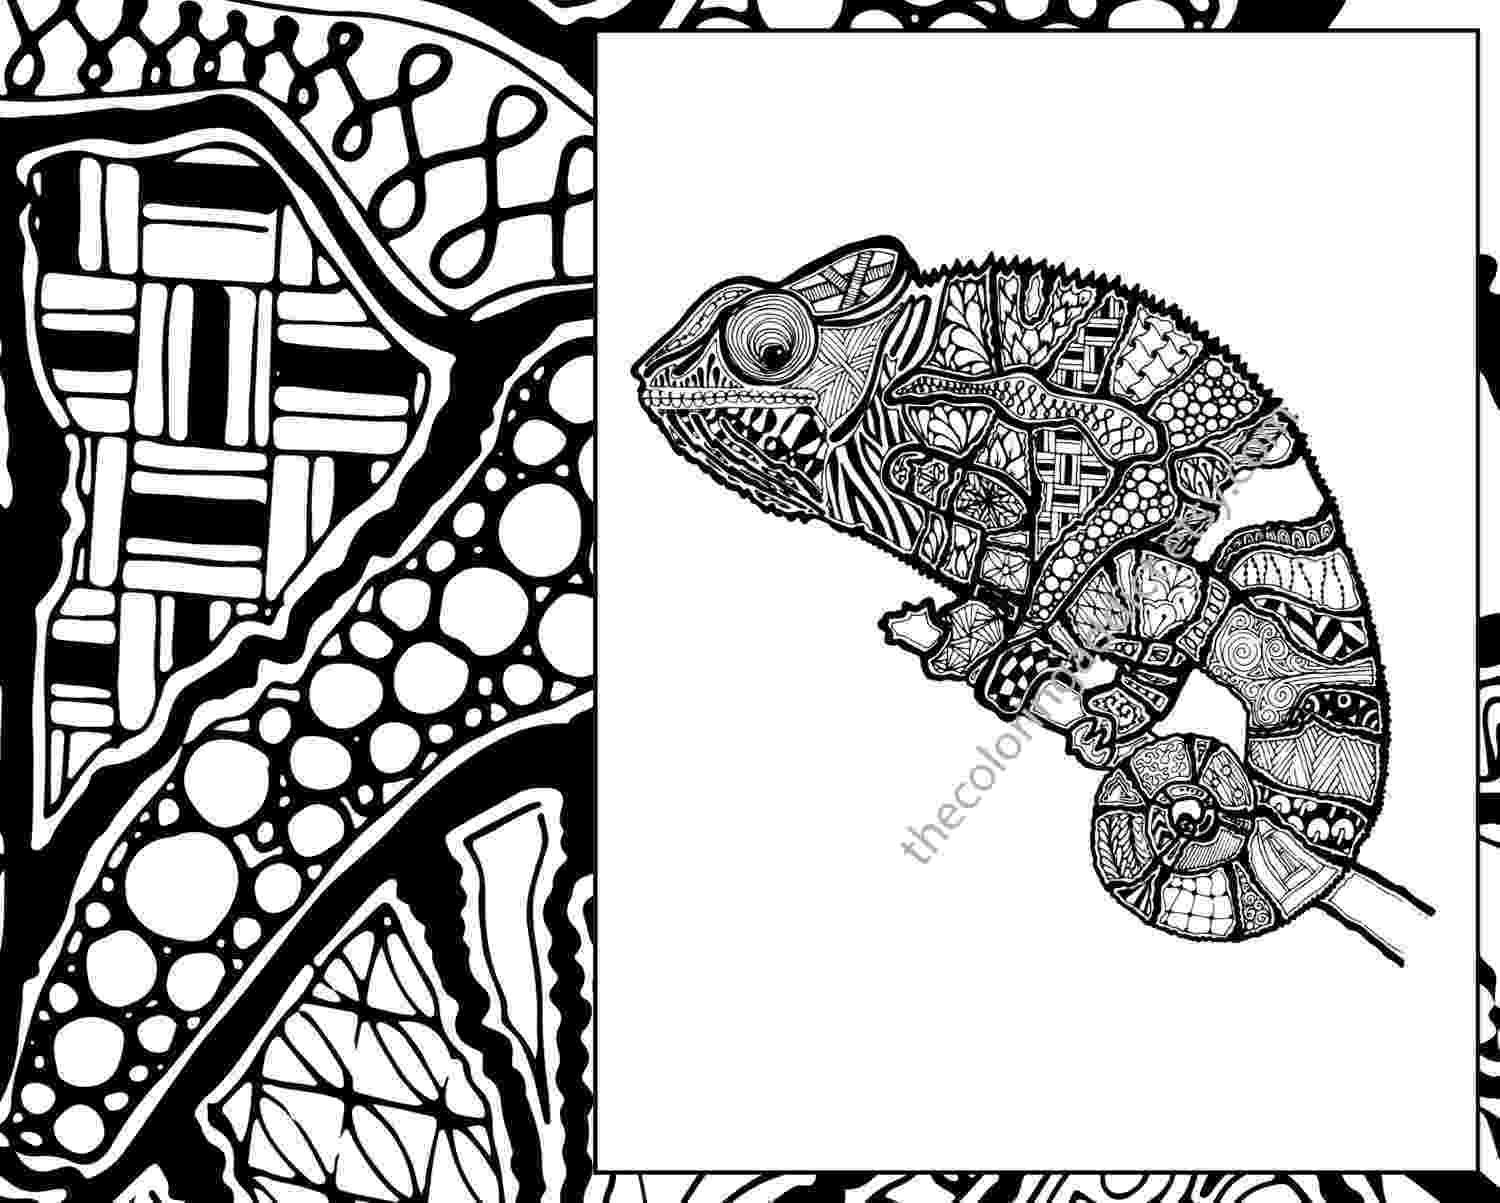 zentangle colouring pages animals zentangle lizard coloring page animal zentangle colouring pages animals zentangle colouring